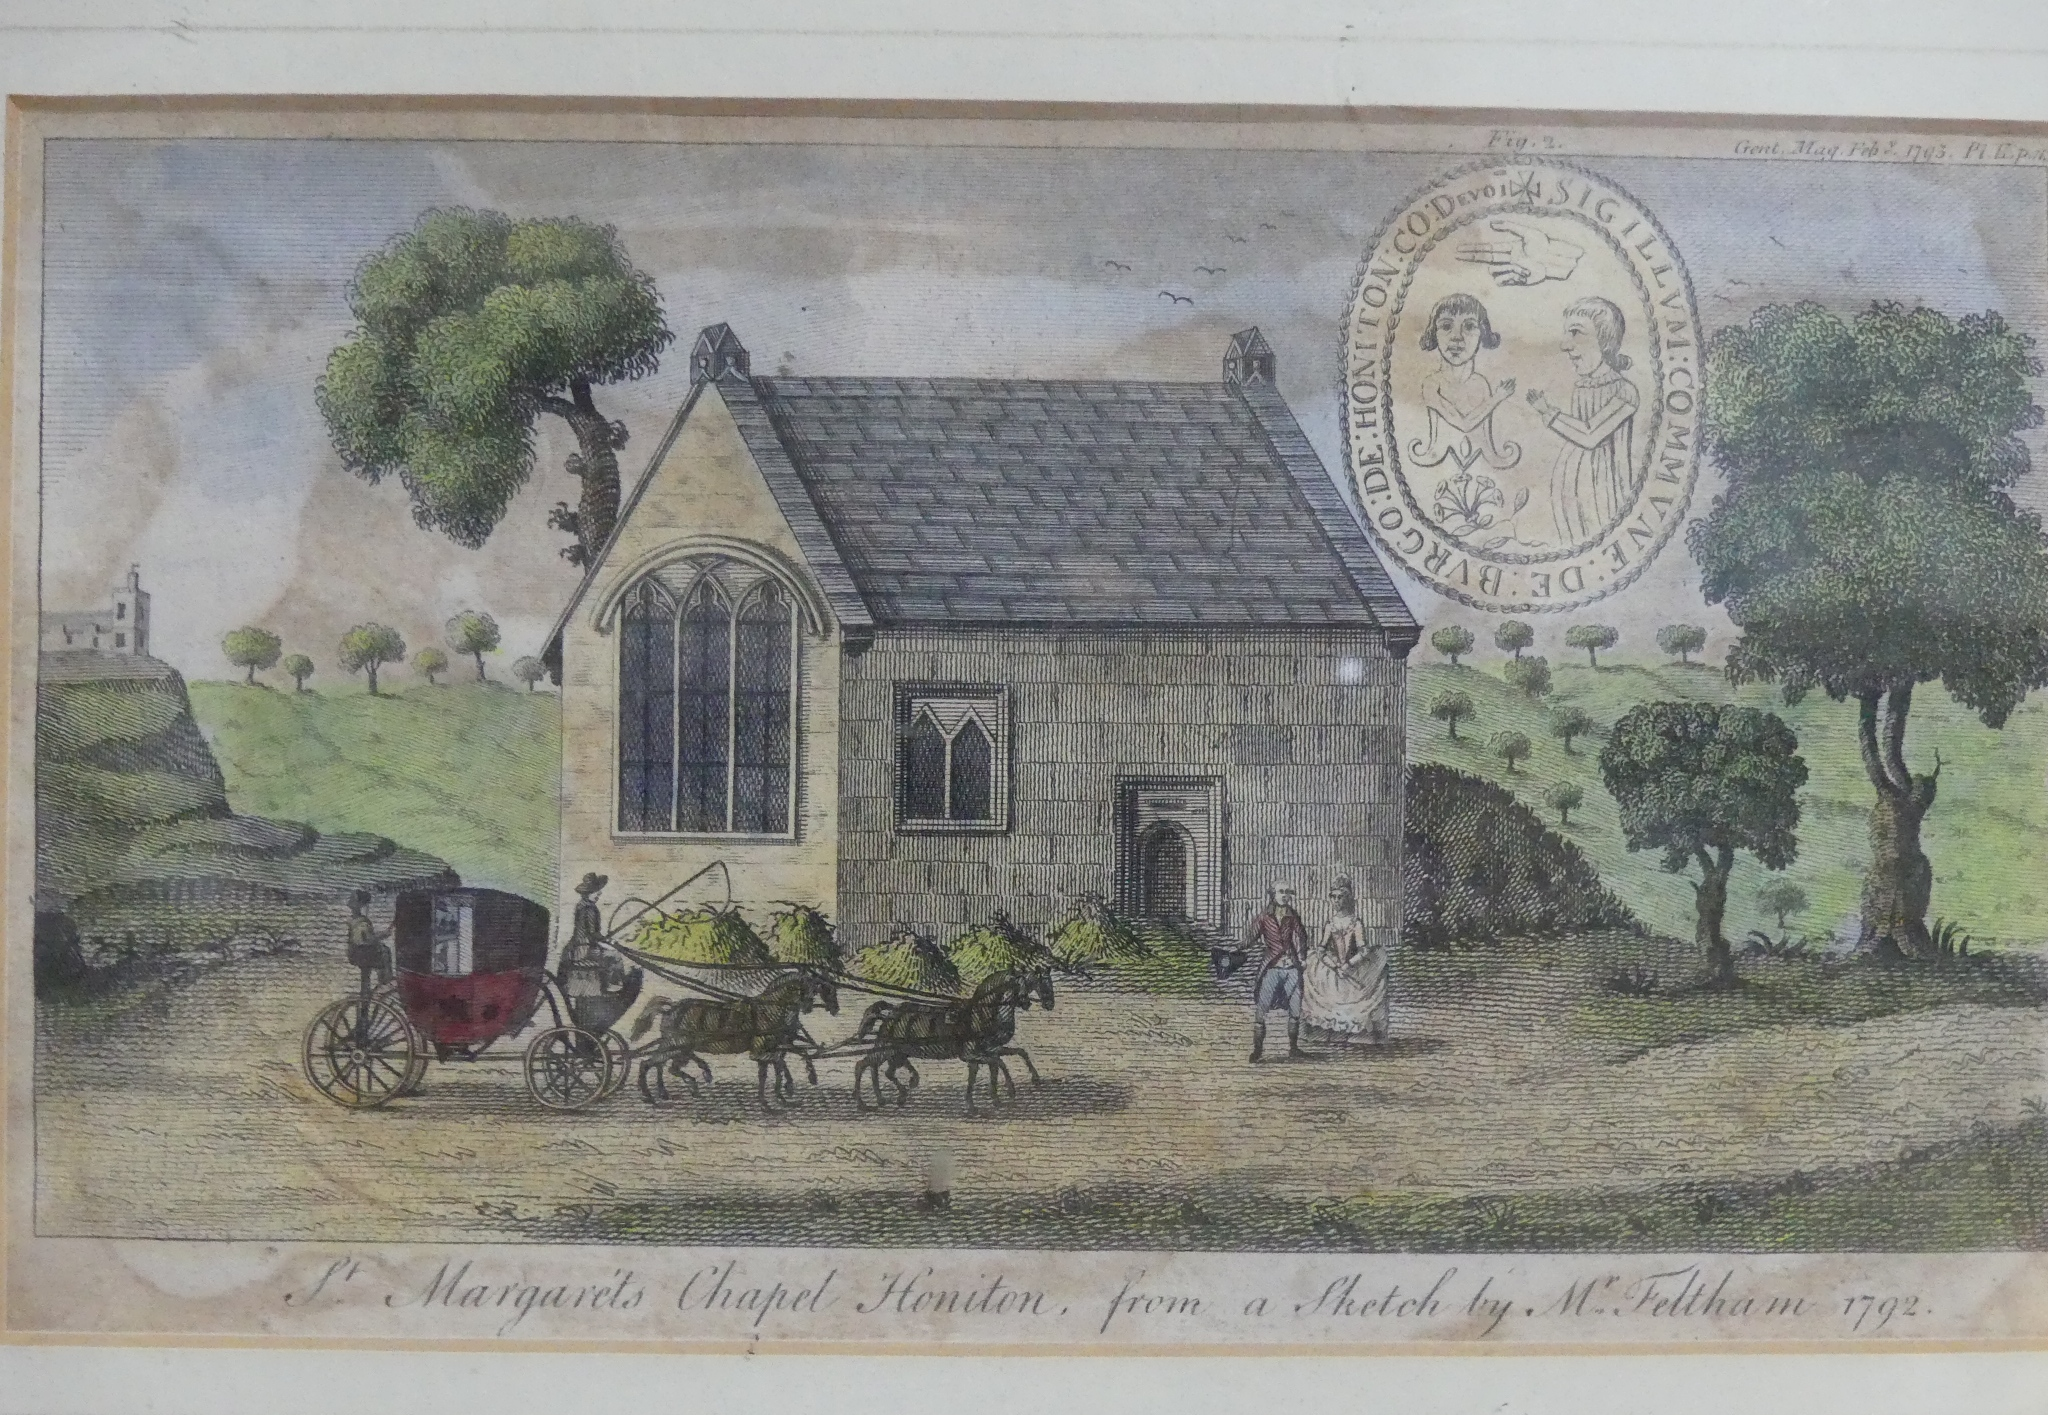 Honiton interest: an antiquarian print of 'St Margaret's Chapel Honiton, from a sketch by Mr - Image 2 of 3